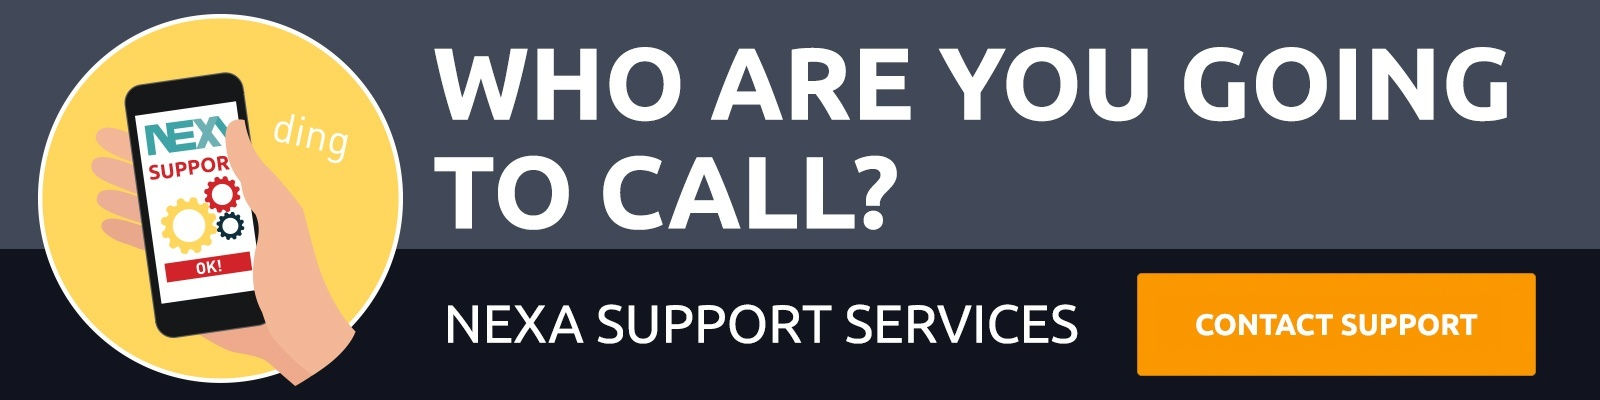 Contact NEXA Support Services